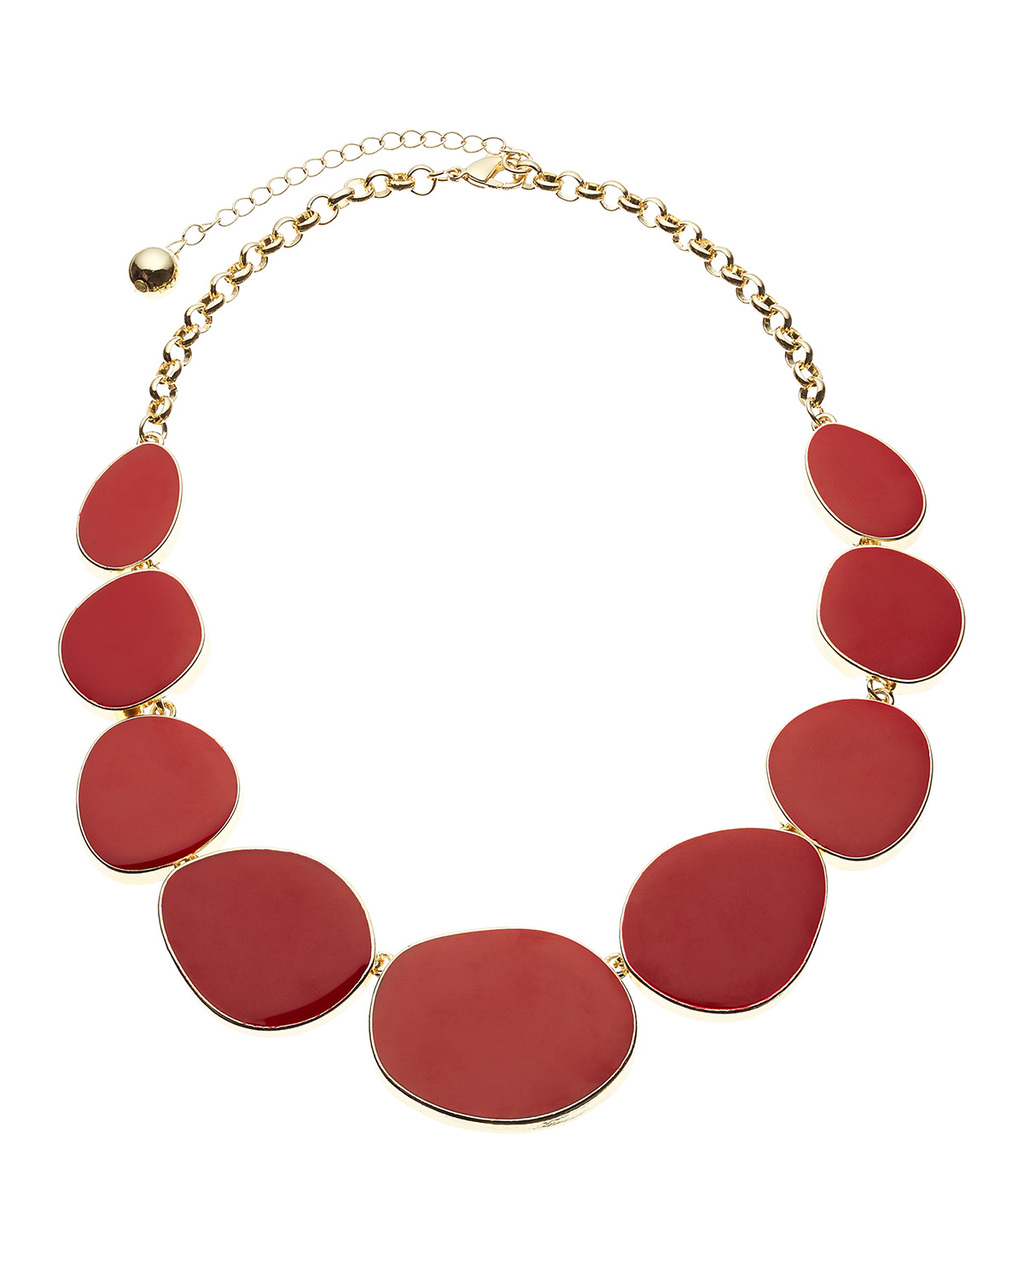 Valentina Necklace - predominant colour: true red; secondary colour: gold; occasions: evening; style: choker/collar/torque; length: short; size: standard; material: plastic/rubber; finish: plain; embellishment: beading; season: s/s 2016; wardrobe: event